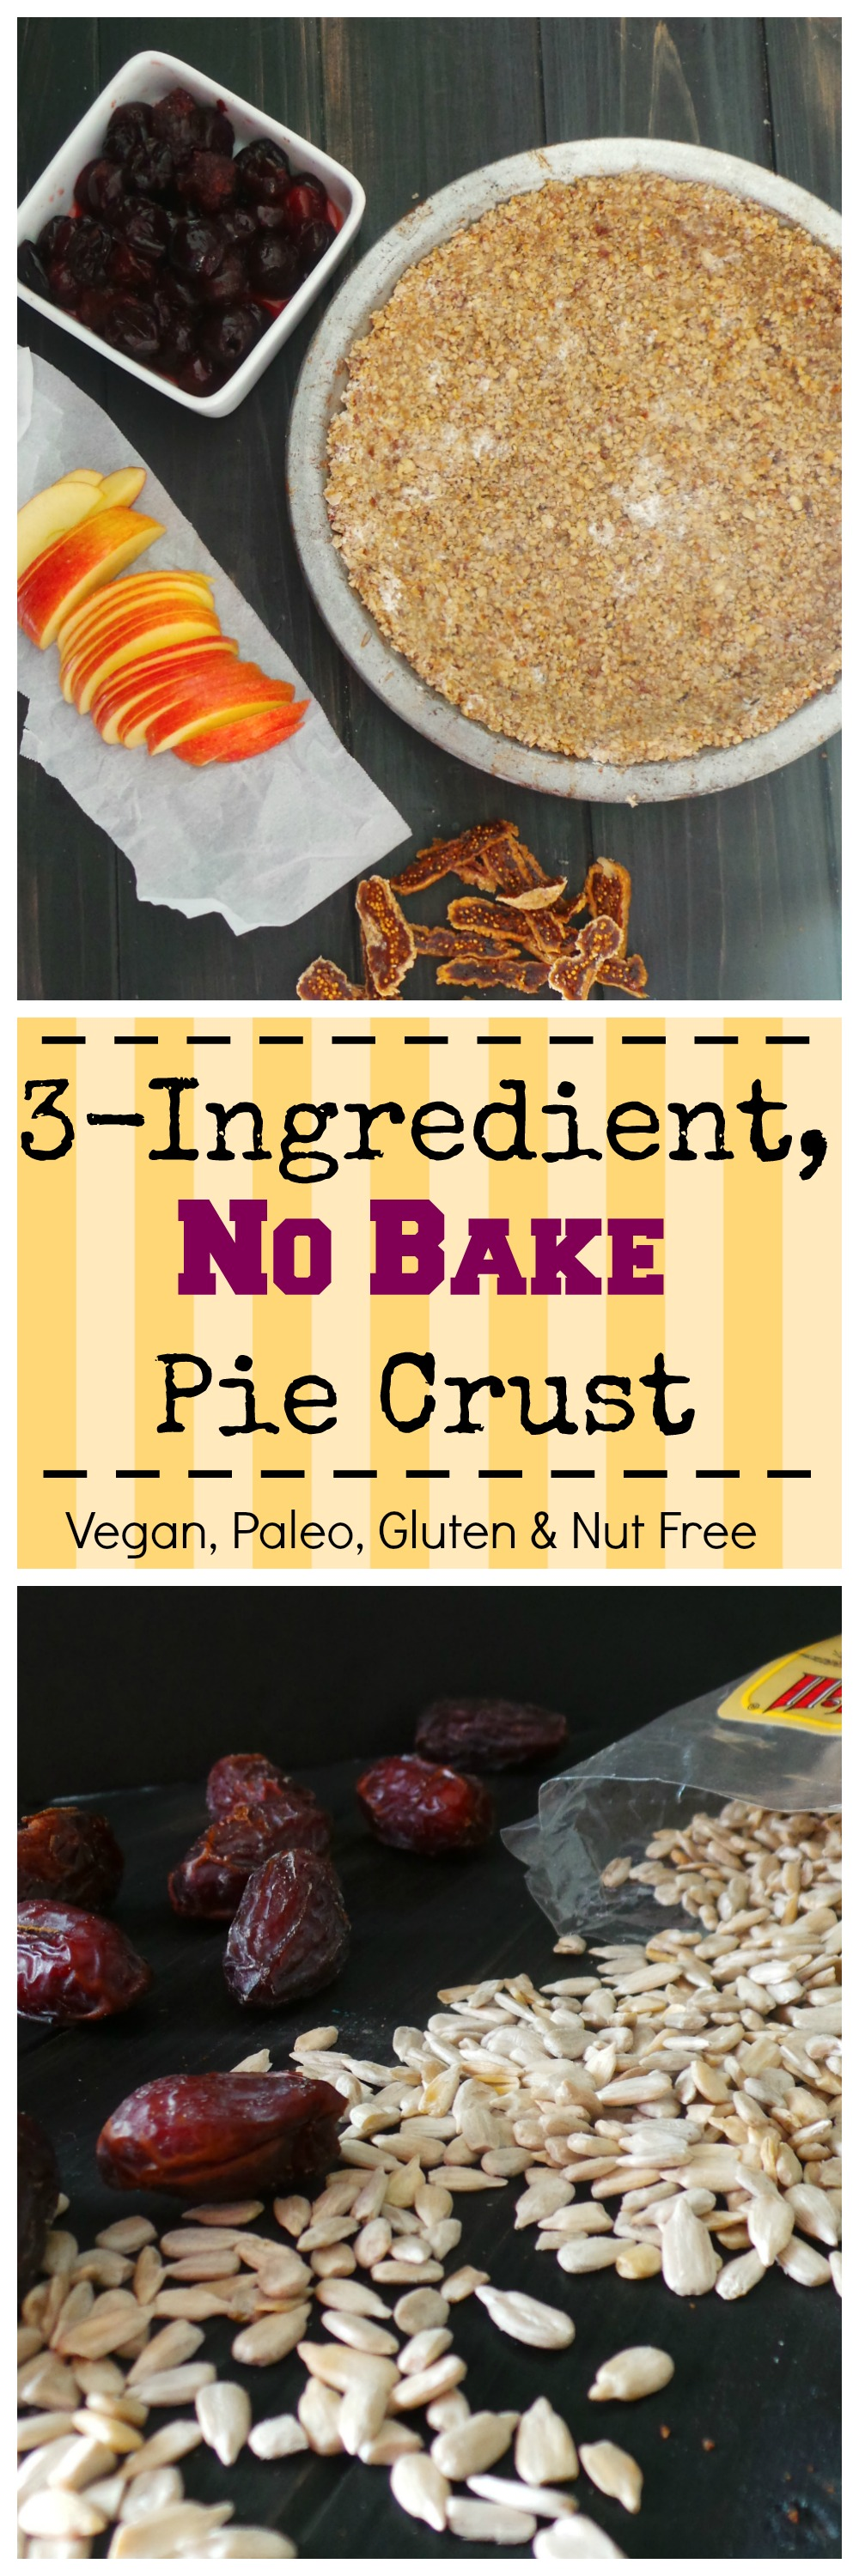 No Bake Pie Crust